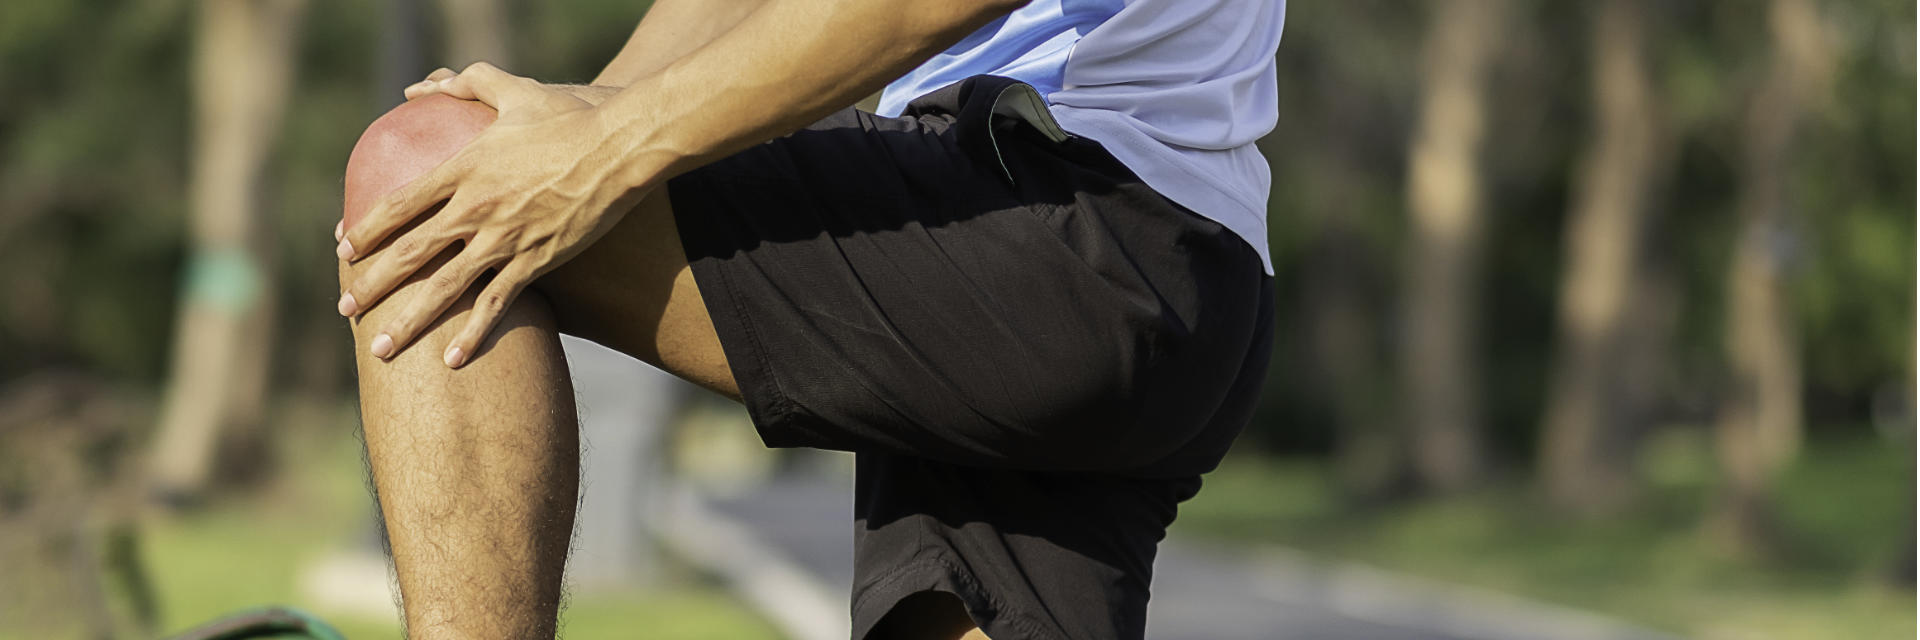 A runner touching the painful knee joint.